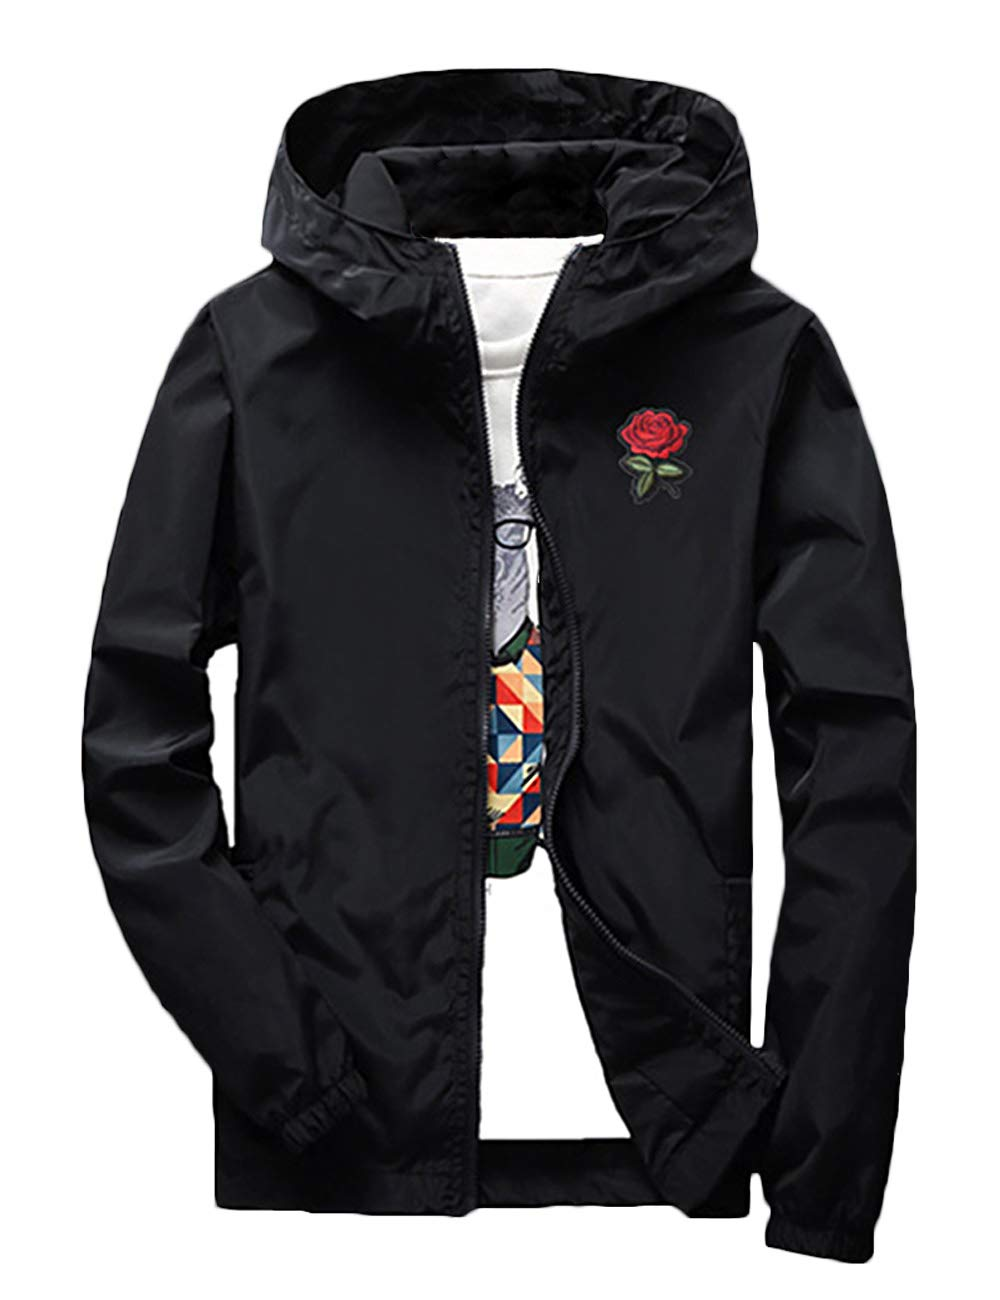 Rexcyril Men's Rose Floral Windbreaker Hooded Jacket Lightweight Solid Color Casual Full Zip Flower Coat Medium Black by Rexcyril